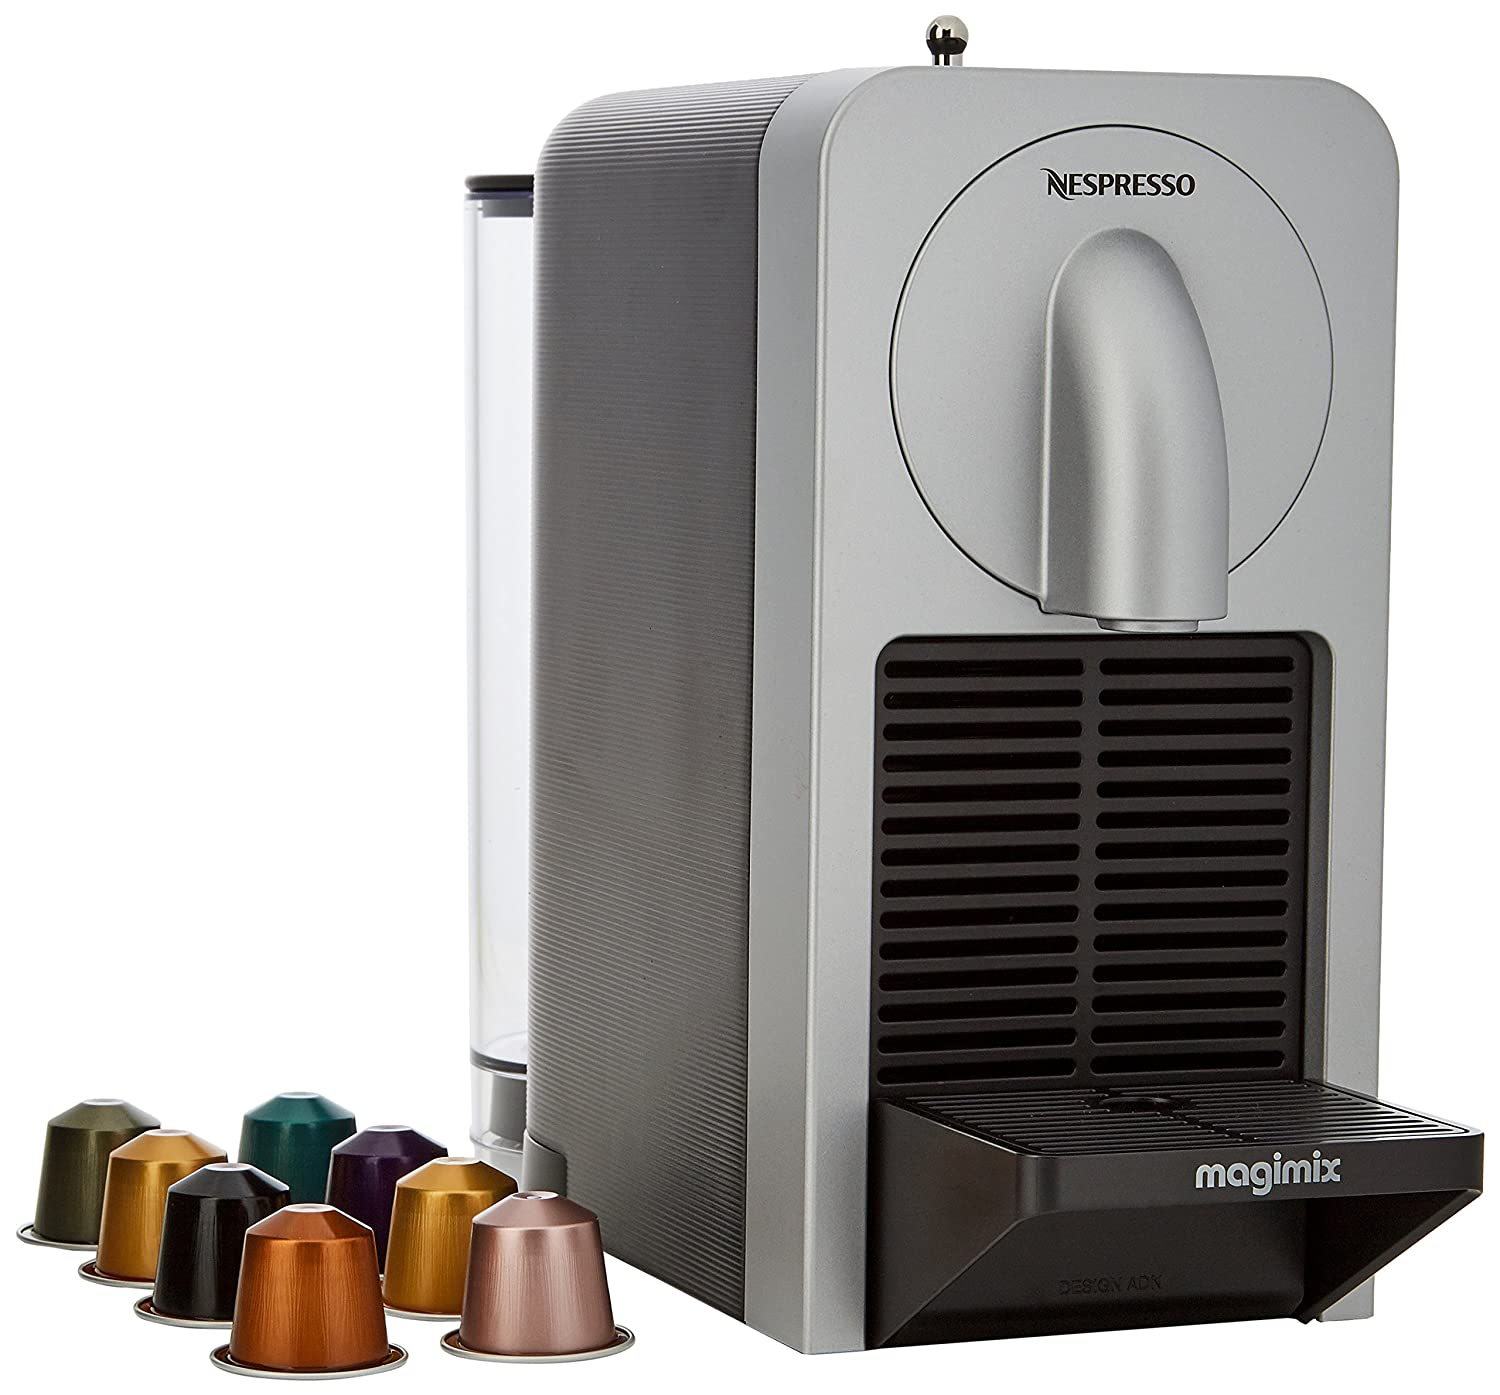 Nespresso Prodigio Coffee Maker, Silver by Magimix 11375